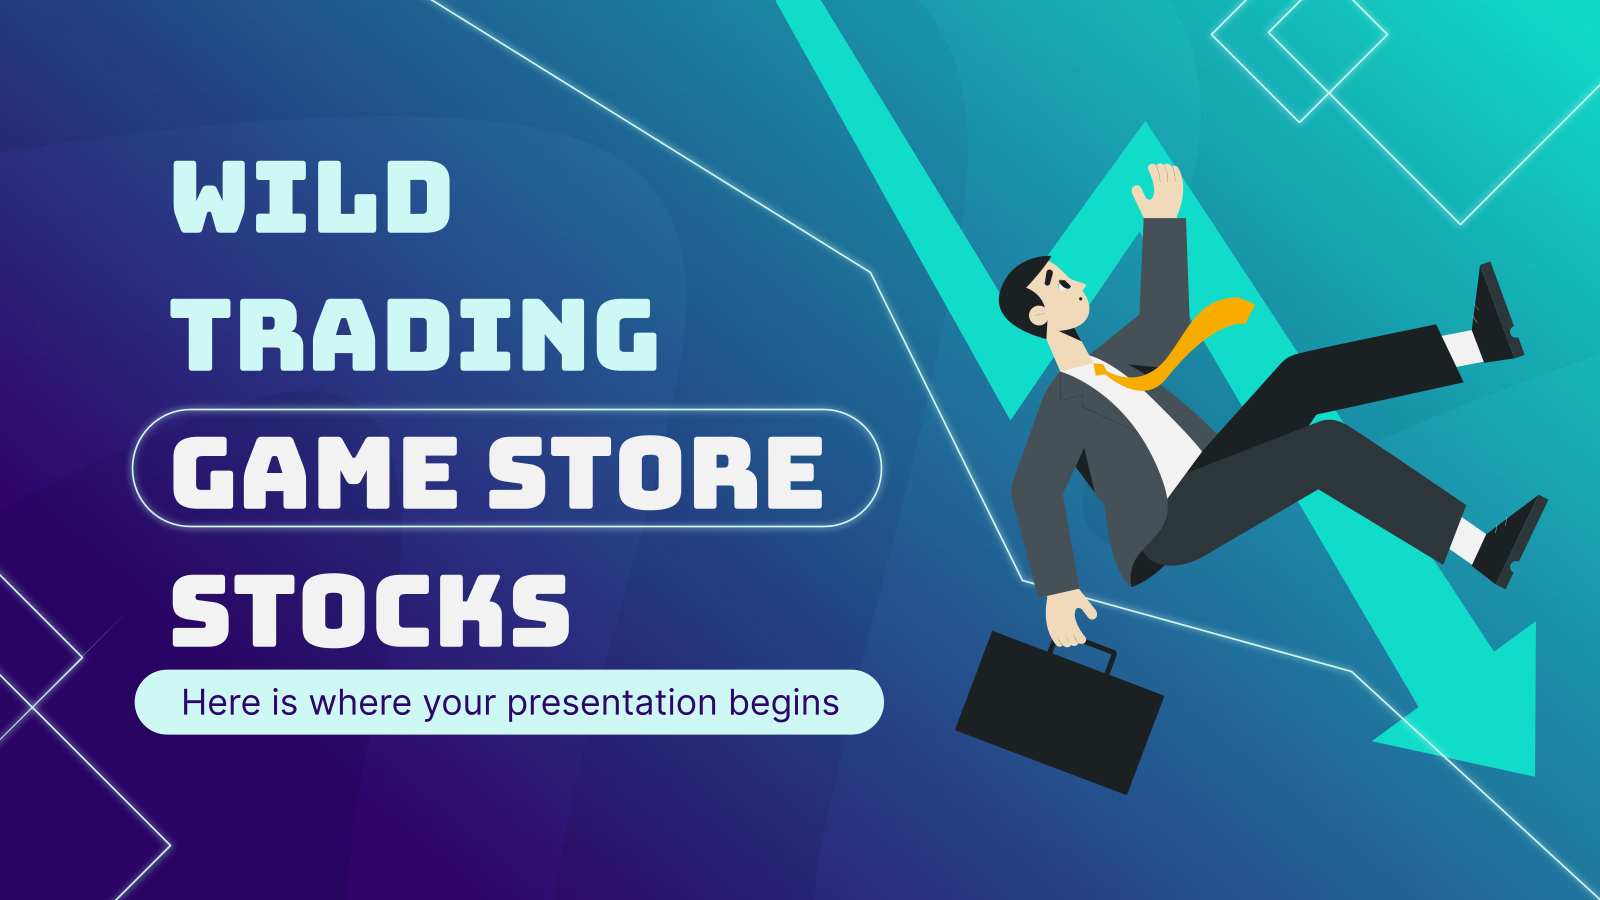 Wild Trading Game Store Stocks presentation template